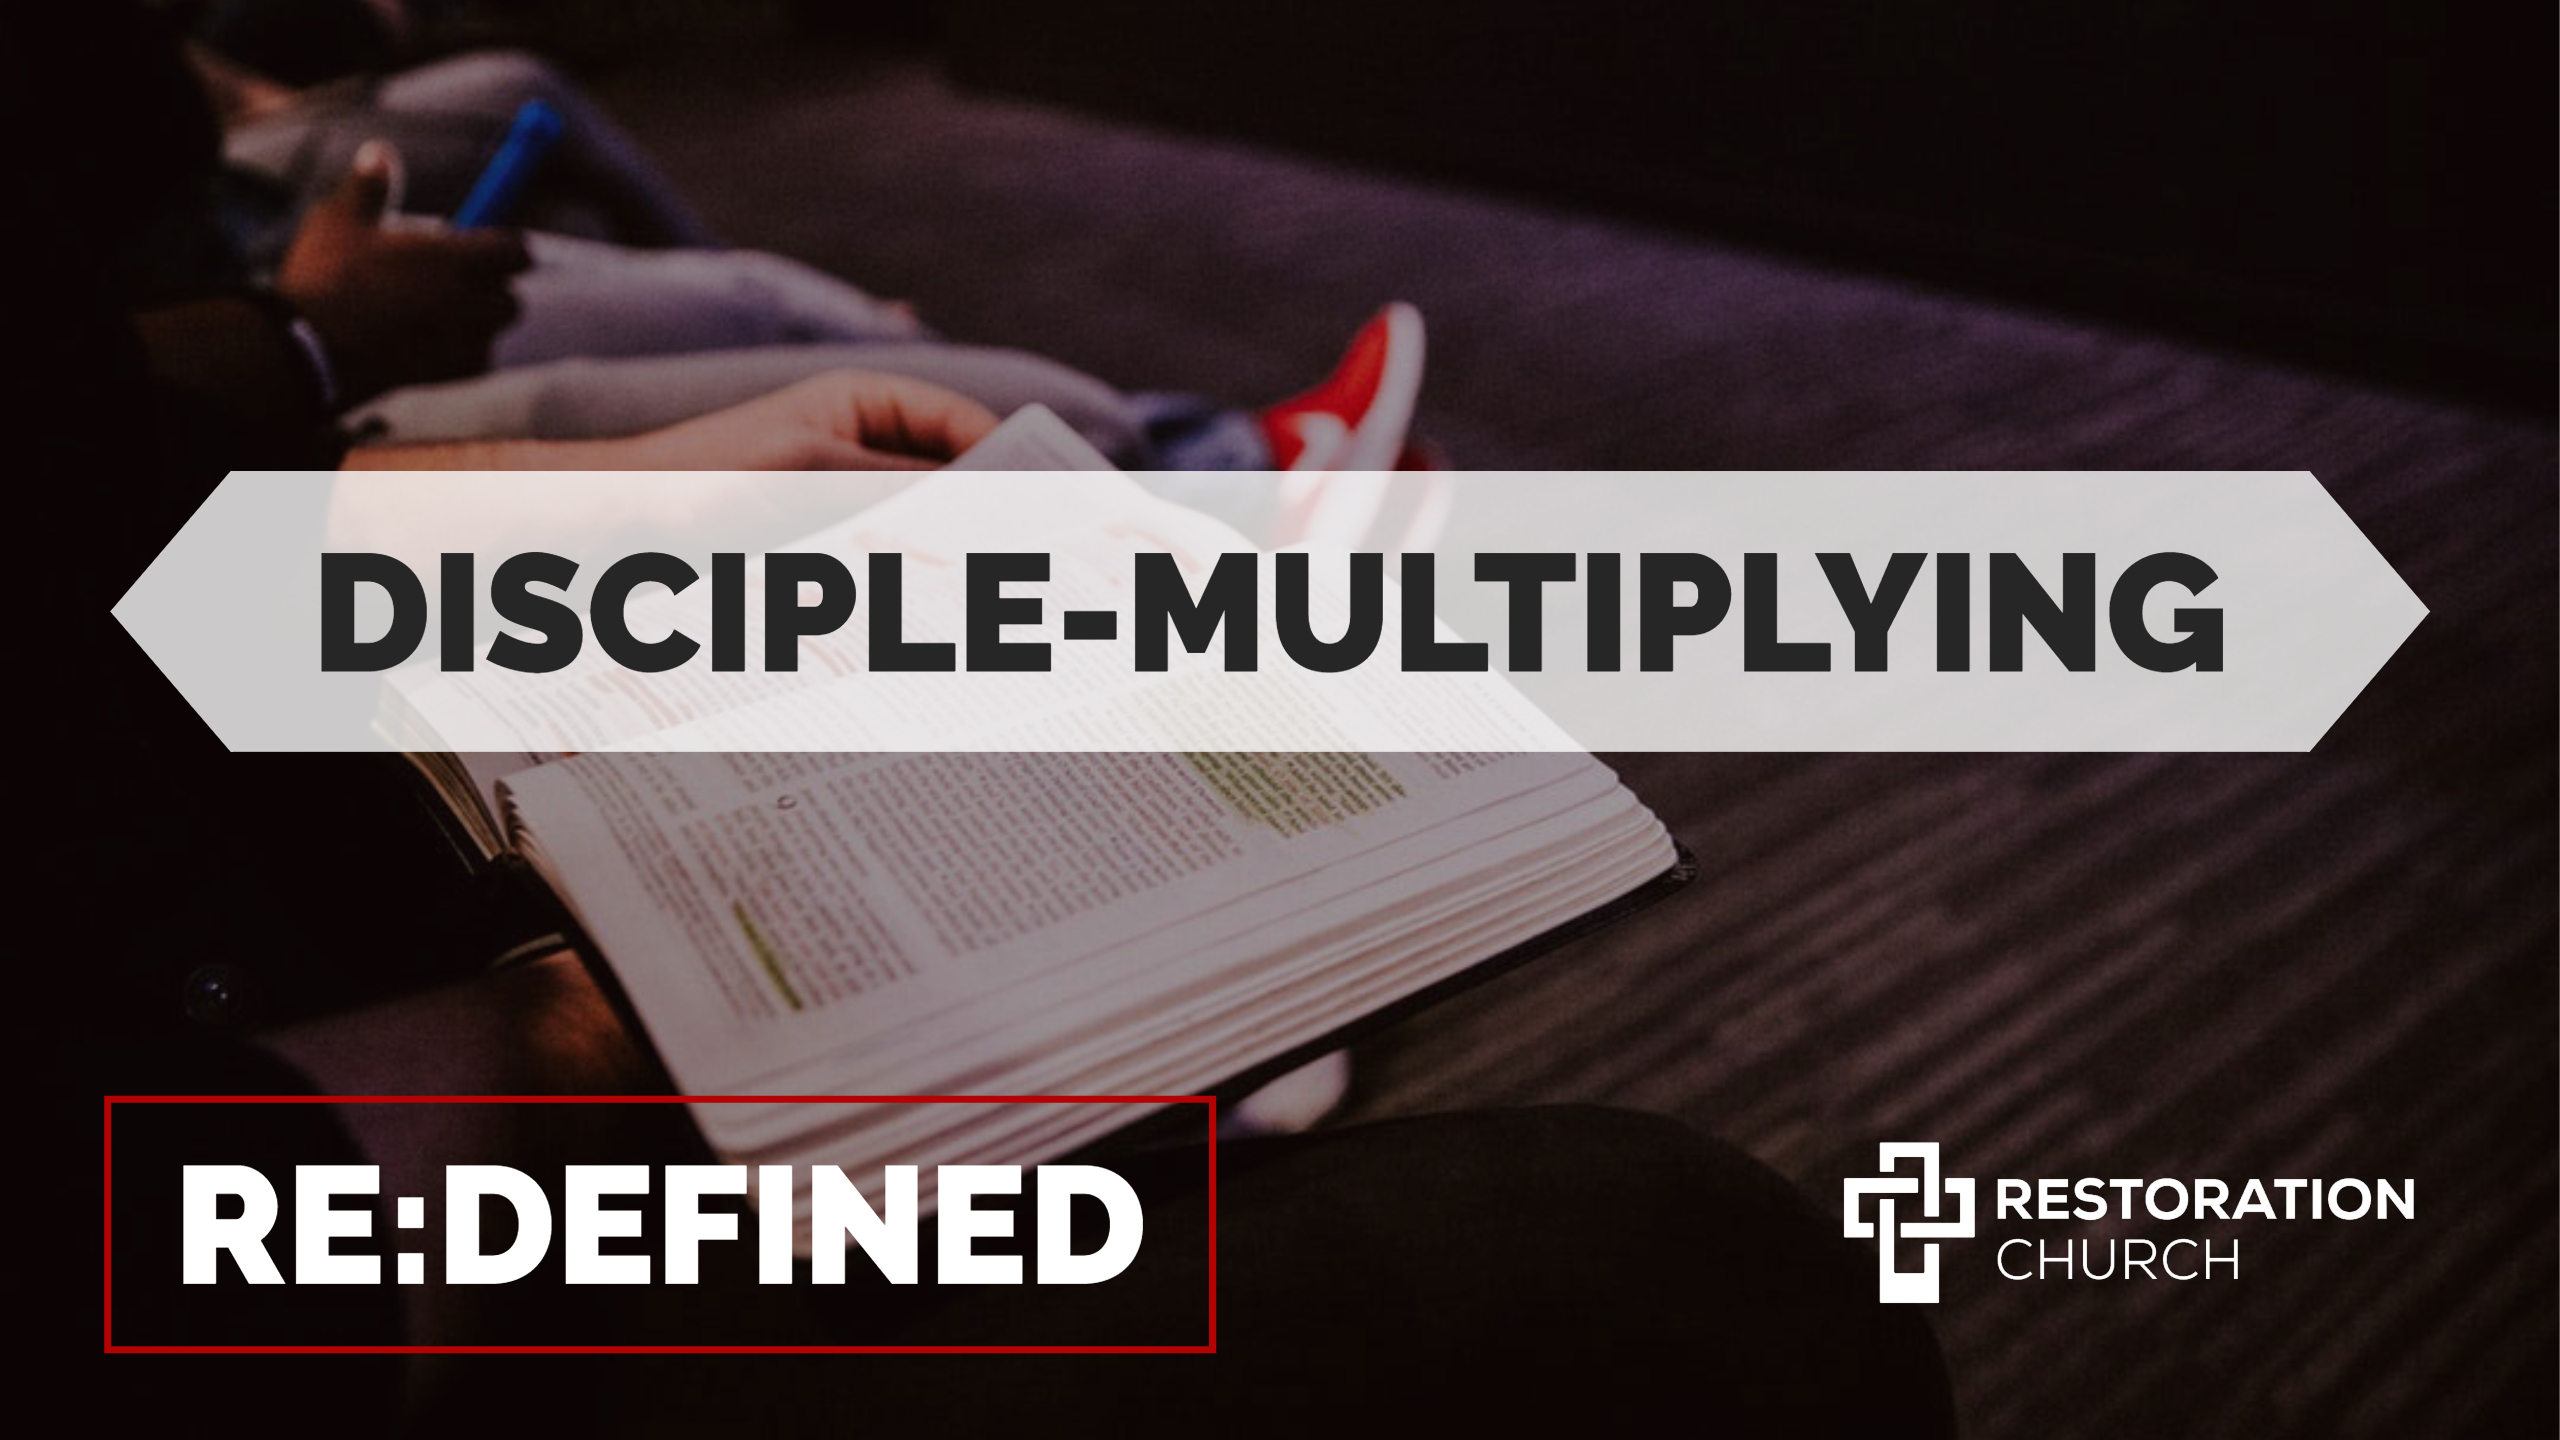 redefined - disciple multiplying